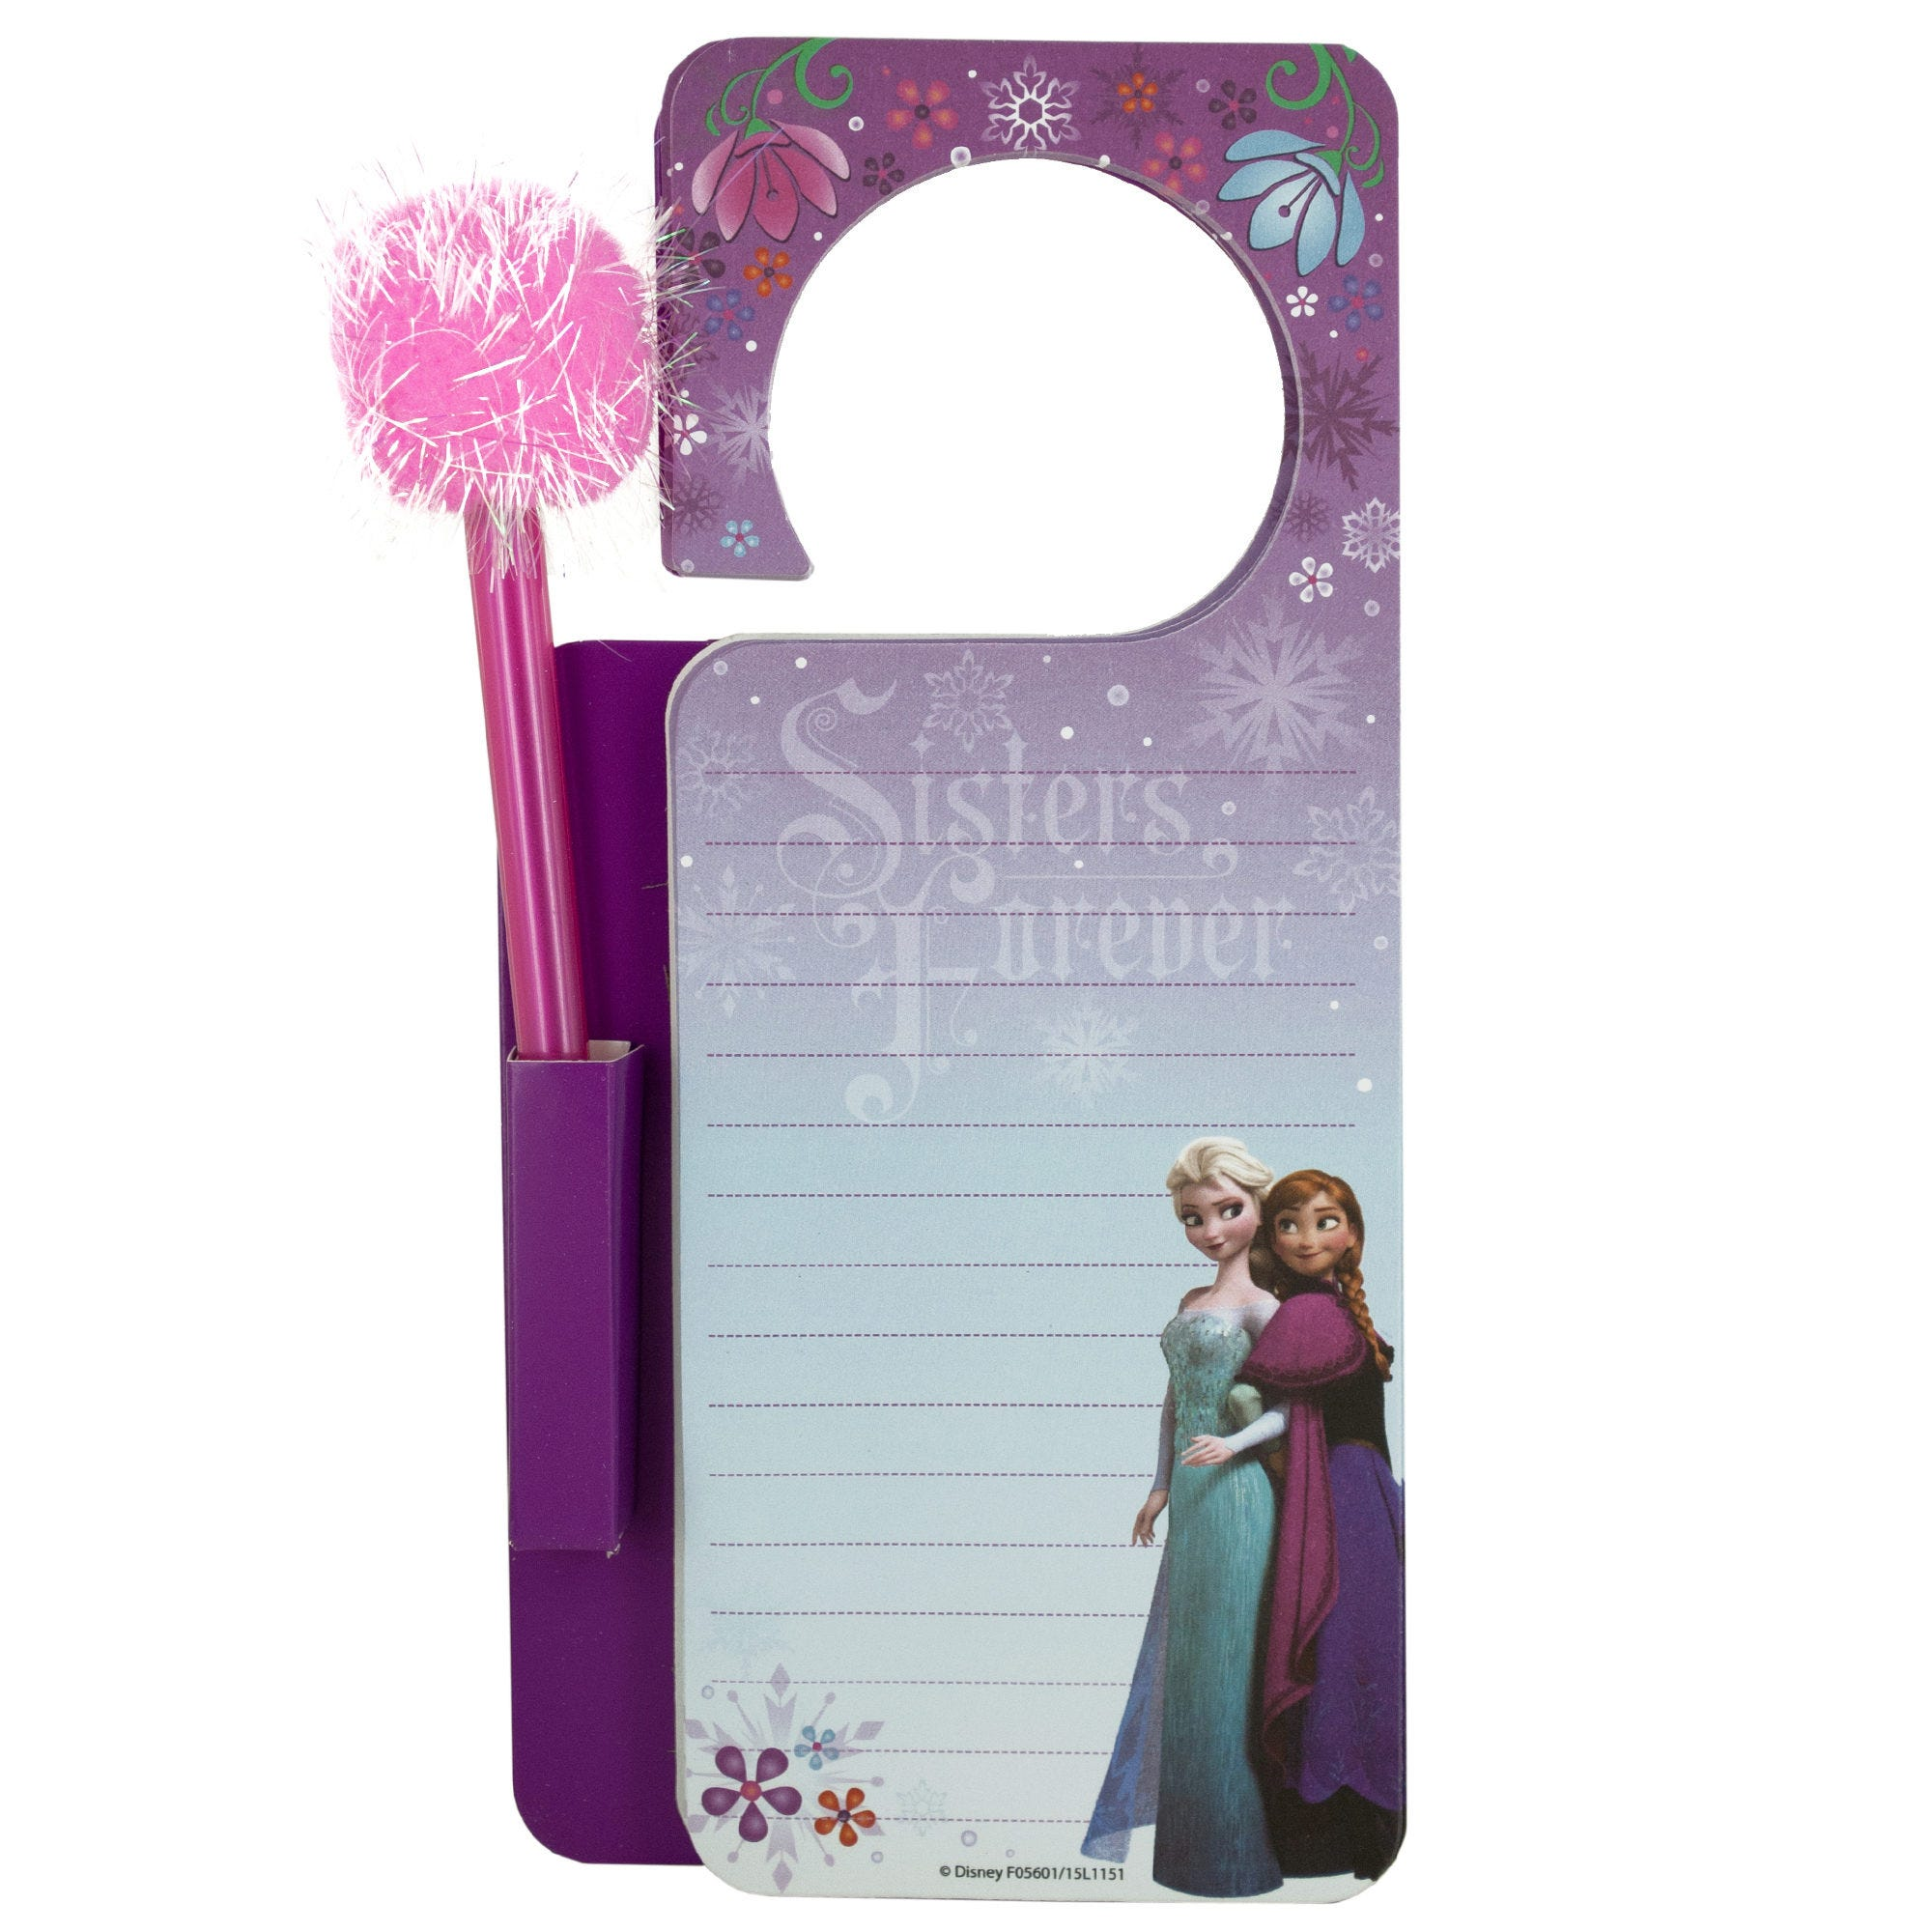 Disney Frozen Door Hanger Memo Pad & Pen Set- Qty 24